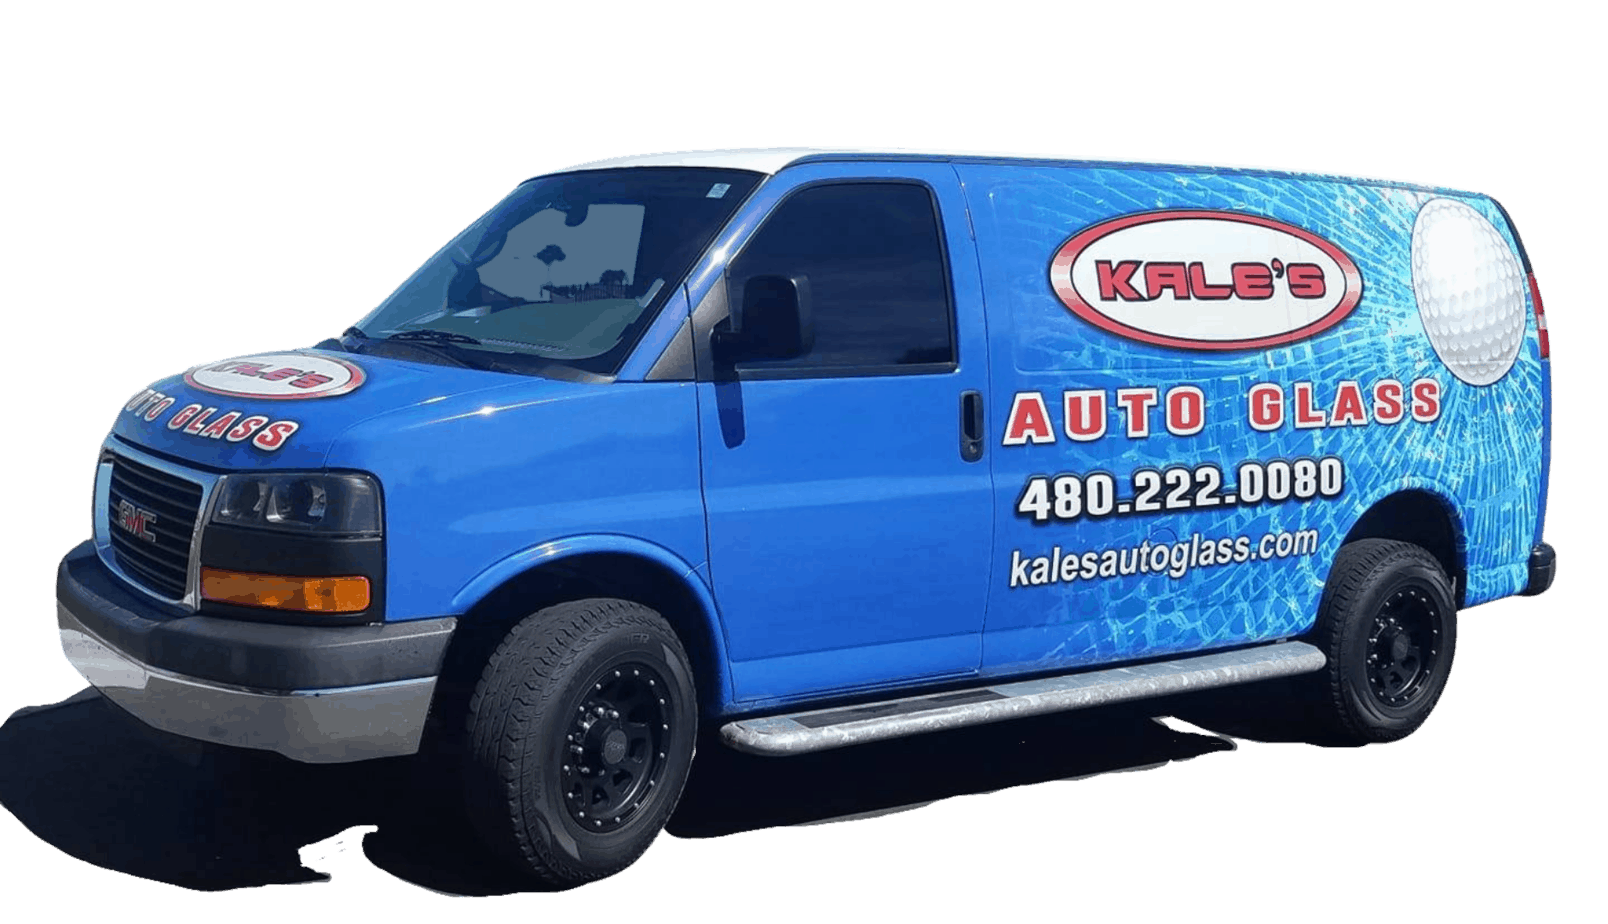 Kale's Mobile Auto Glass Repair